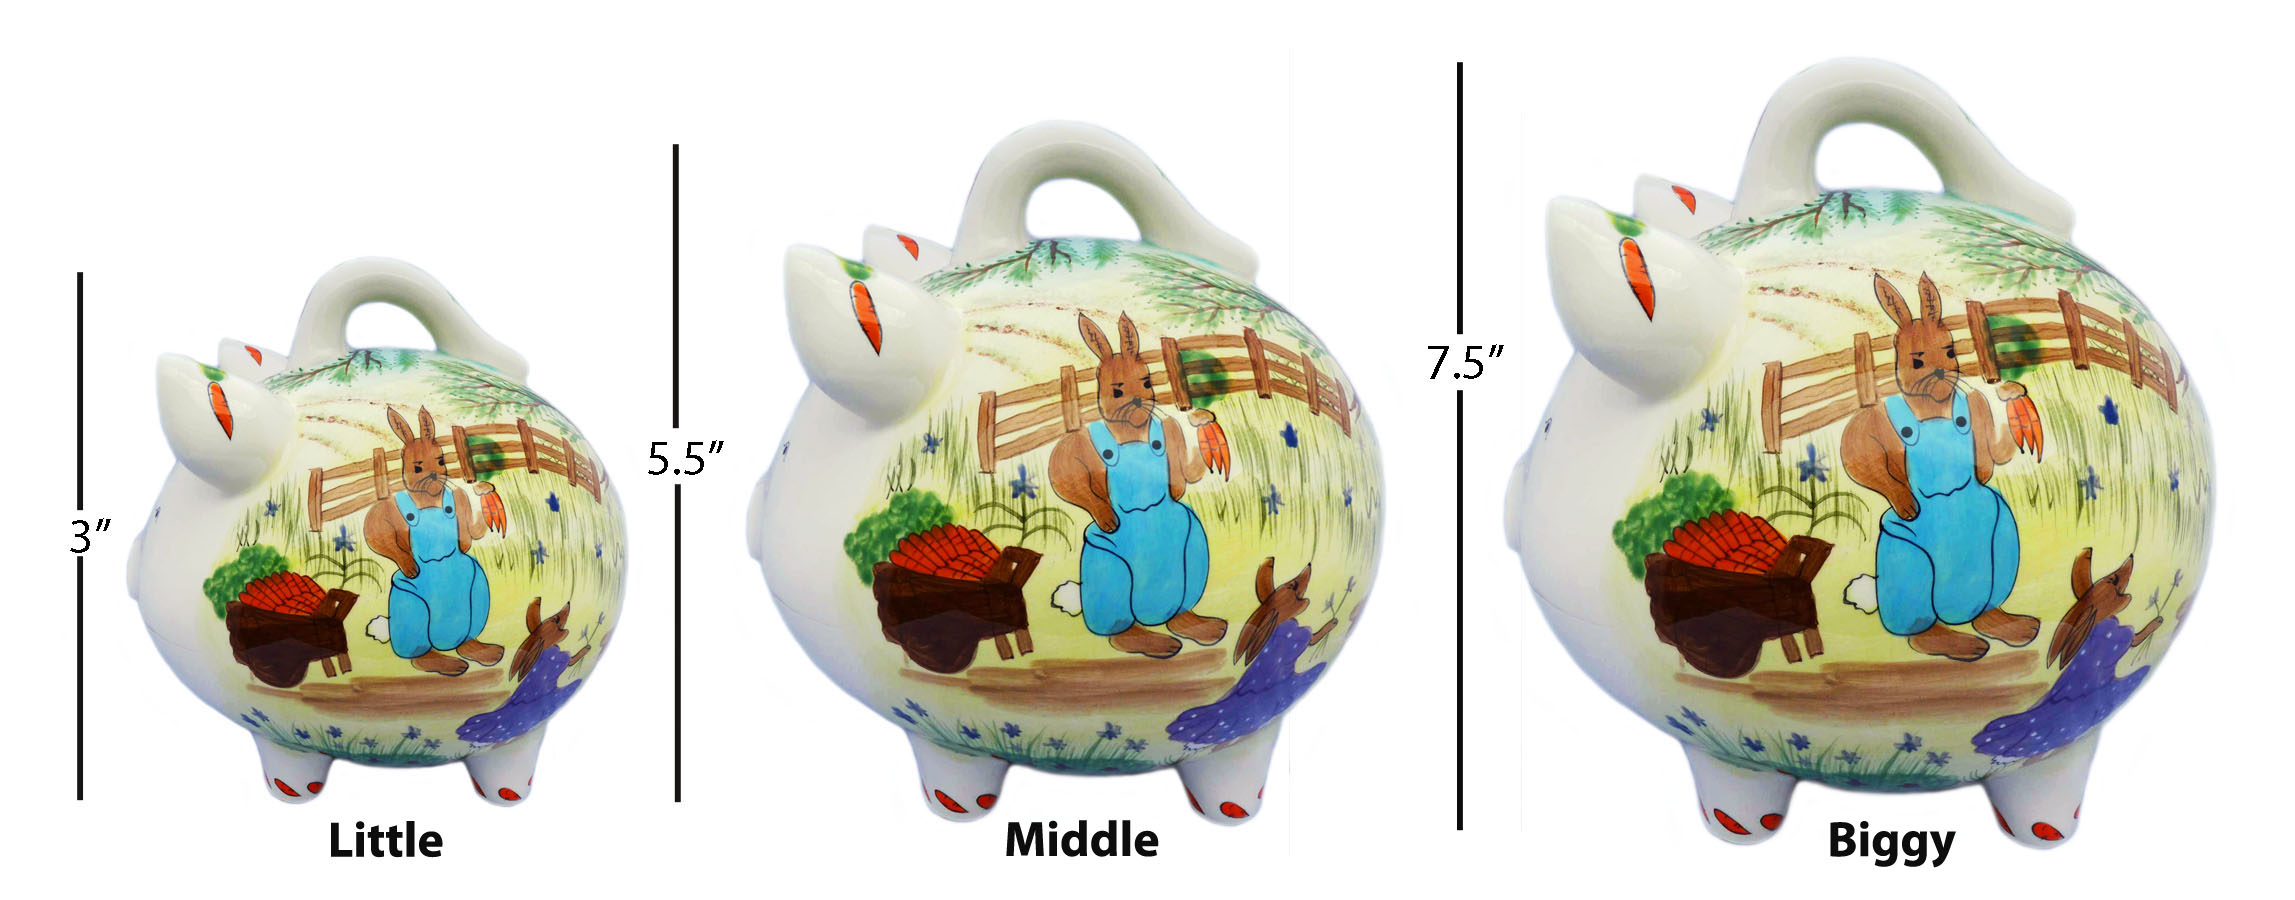 Country Bunnies SIZES.jpg